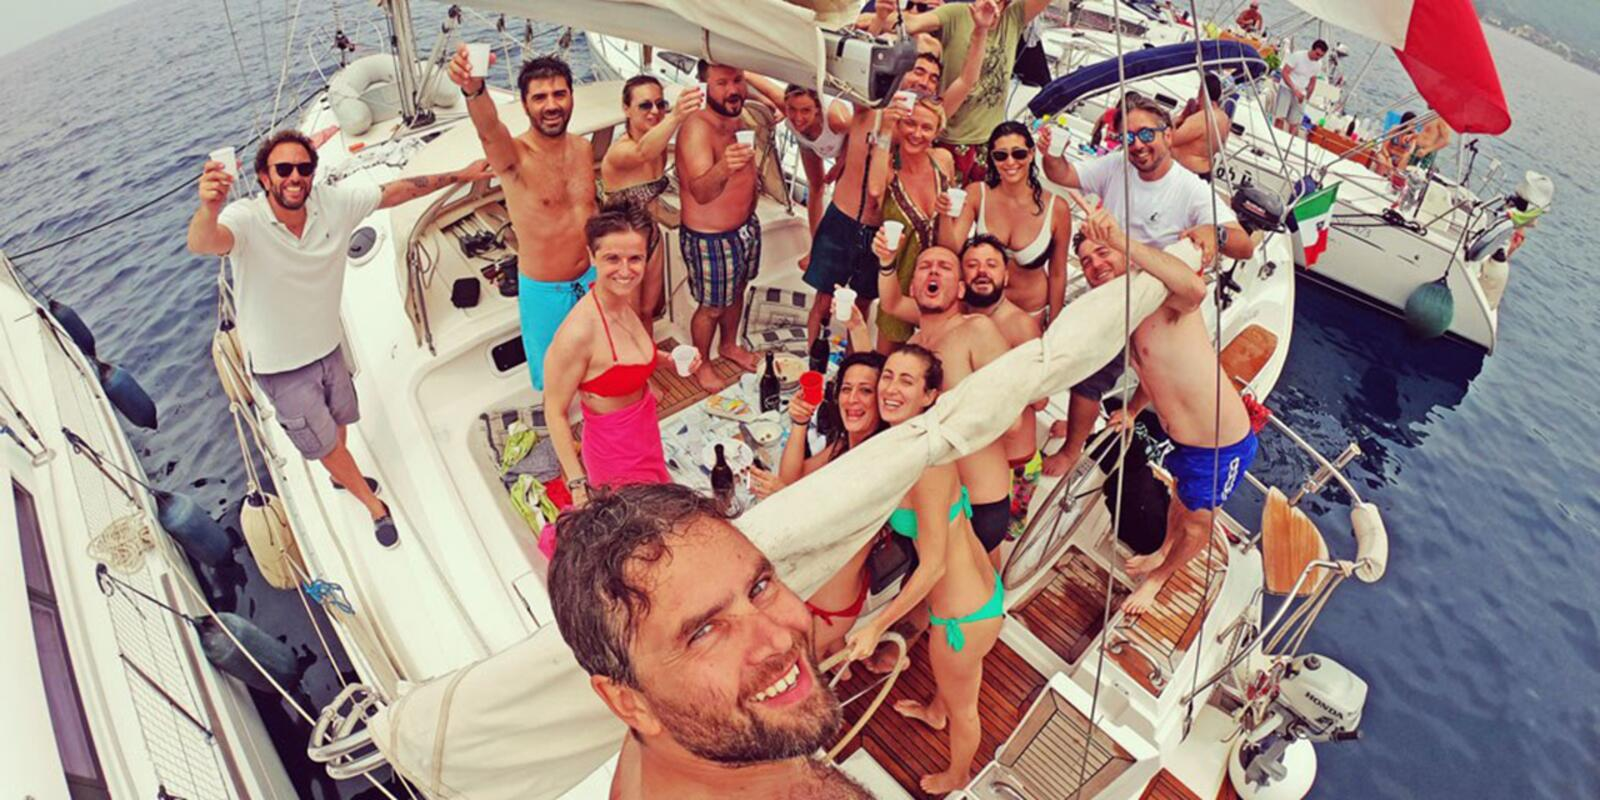 Neverending Summer Boat Party